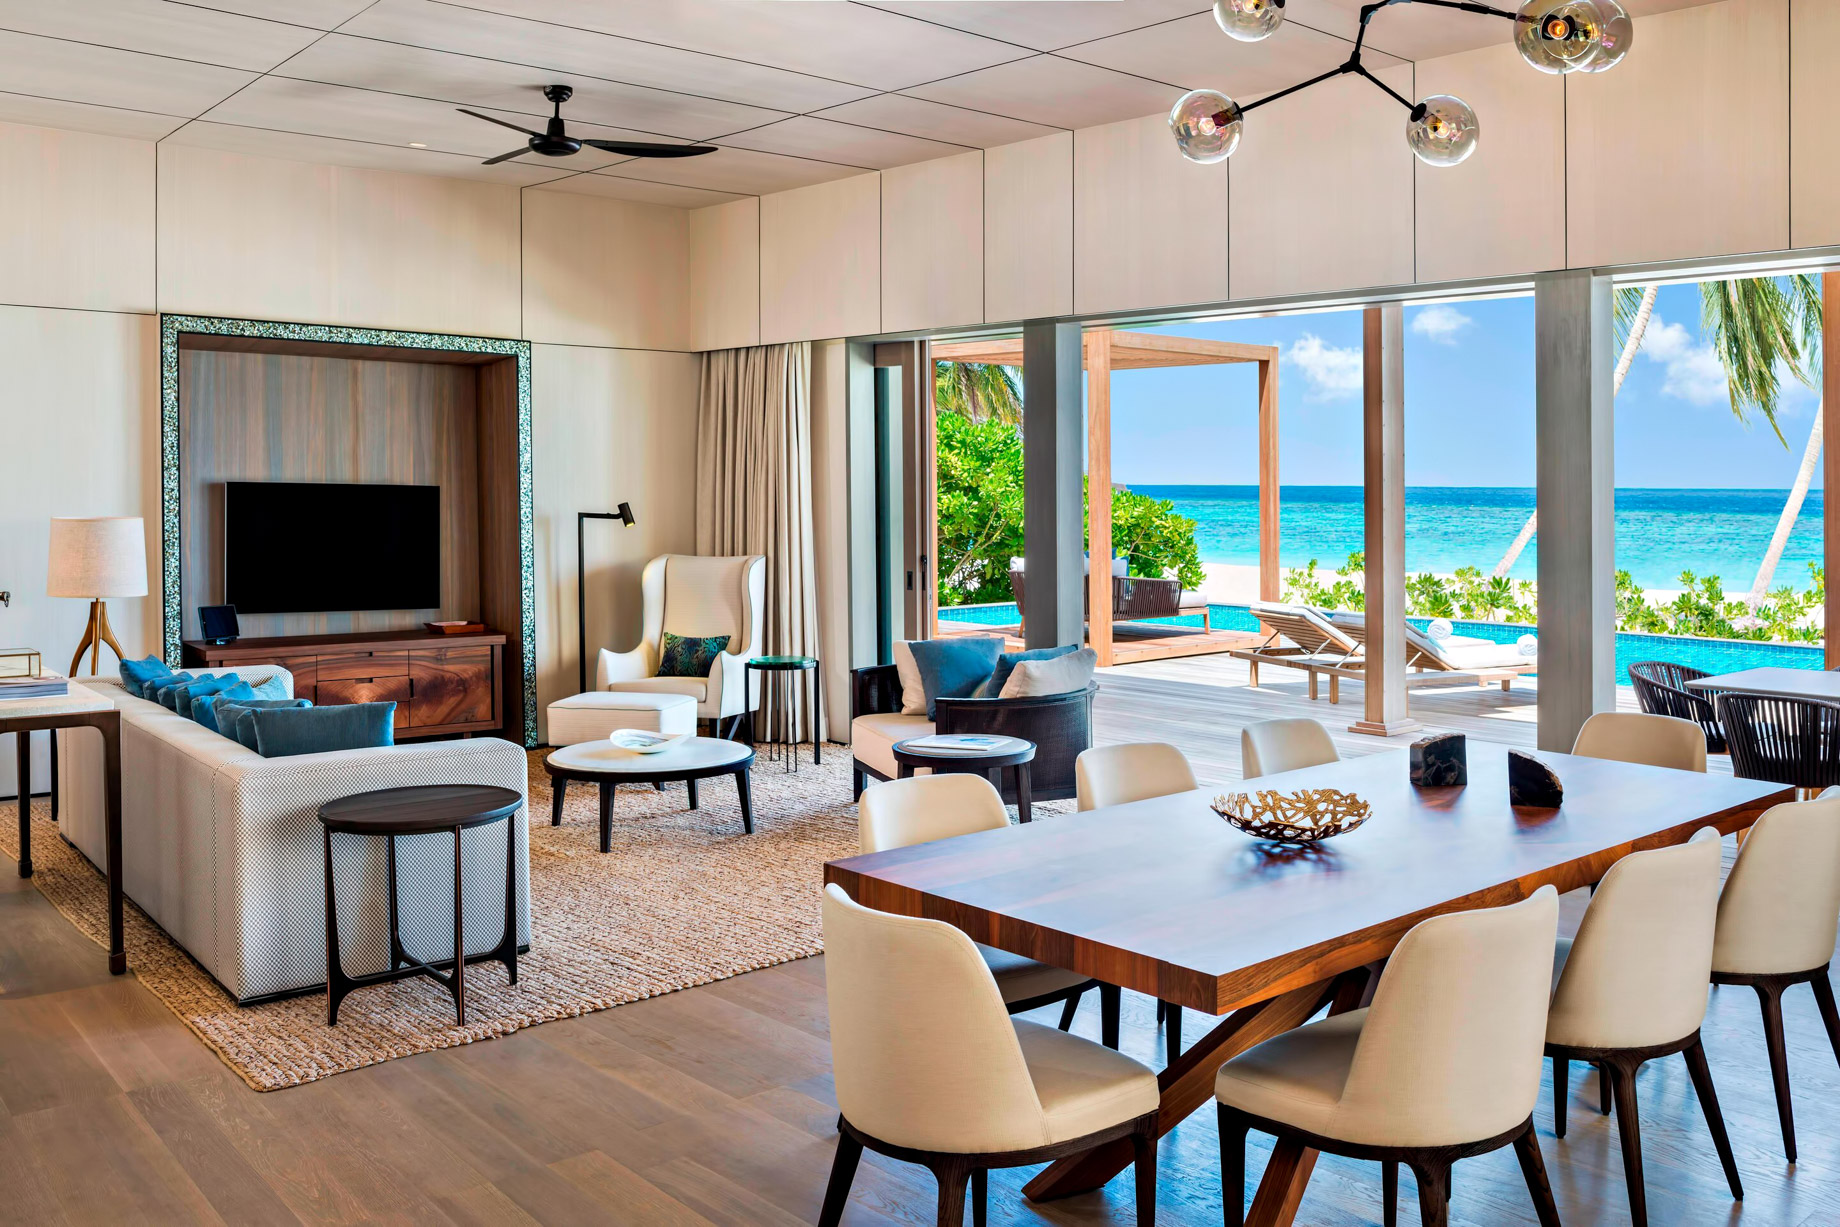 The St. Regis Maldives Vommuli Luxury Resort - Dhaalu Atoll, Maldives - Caroline Astor Estate Living Room